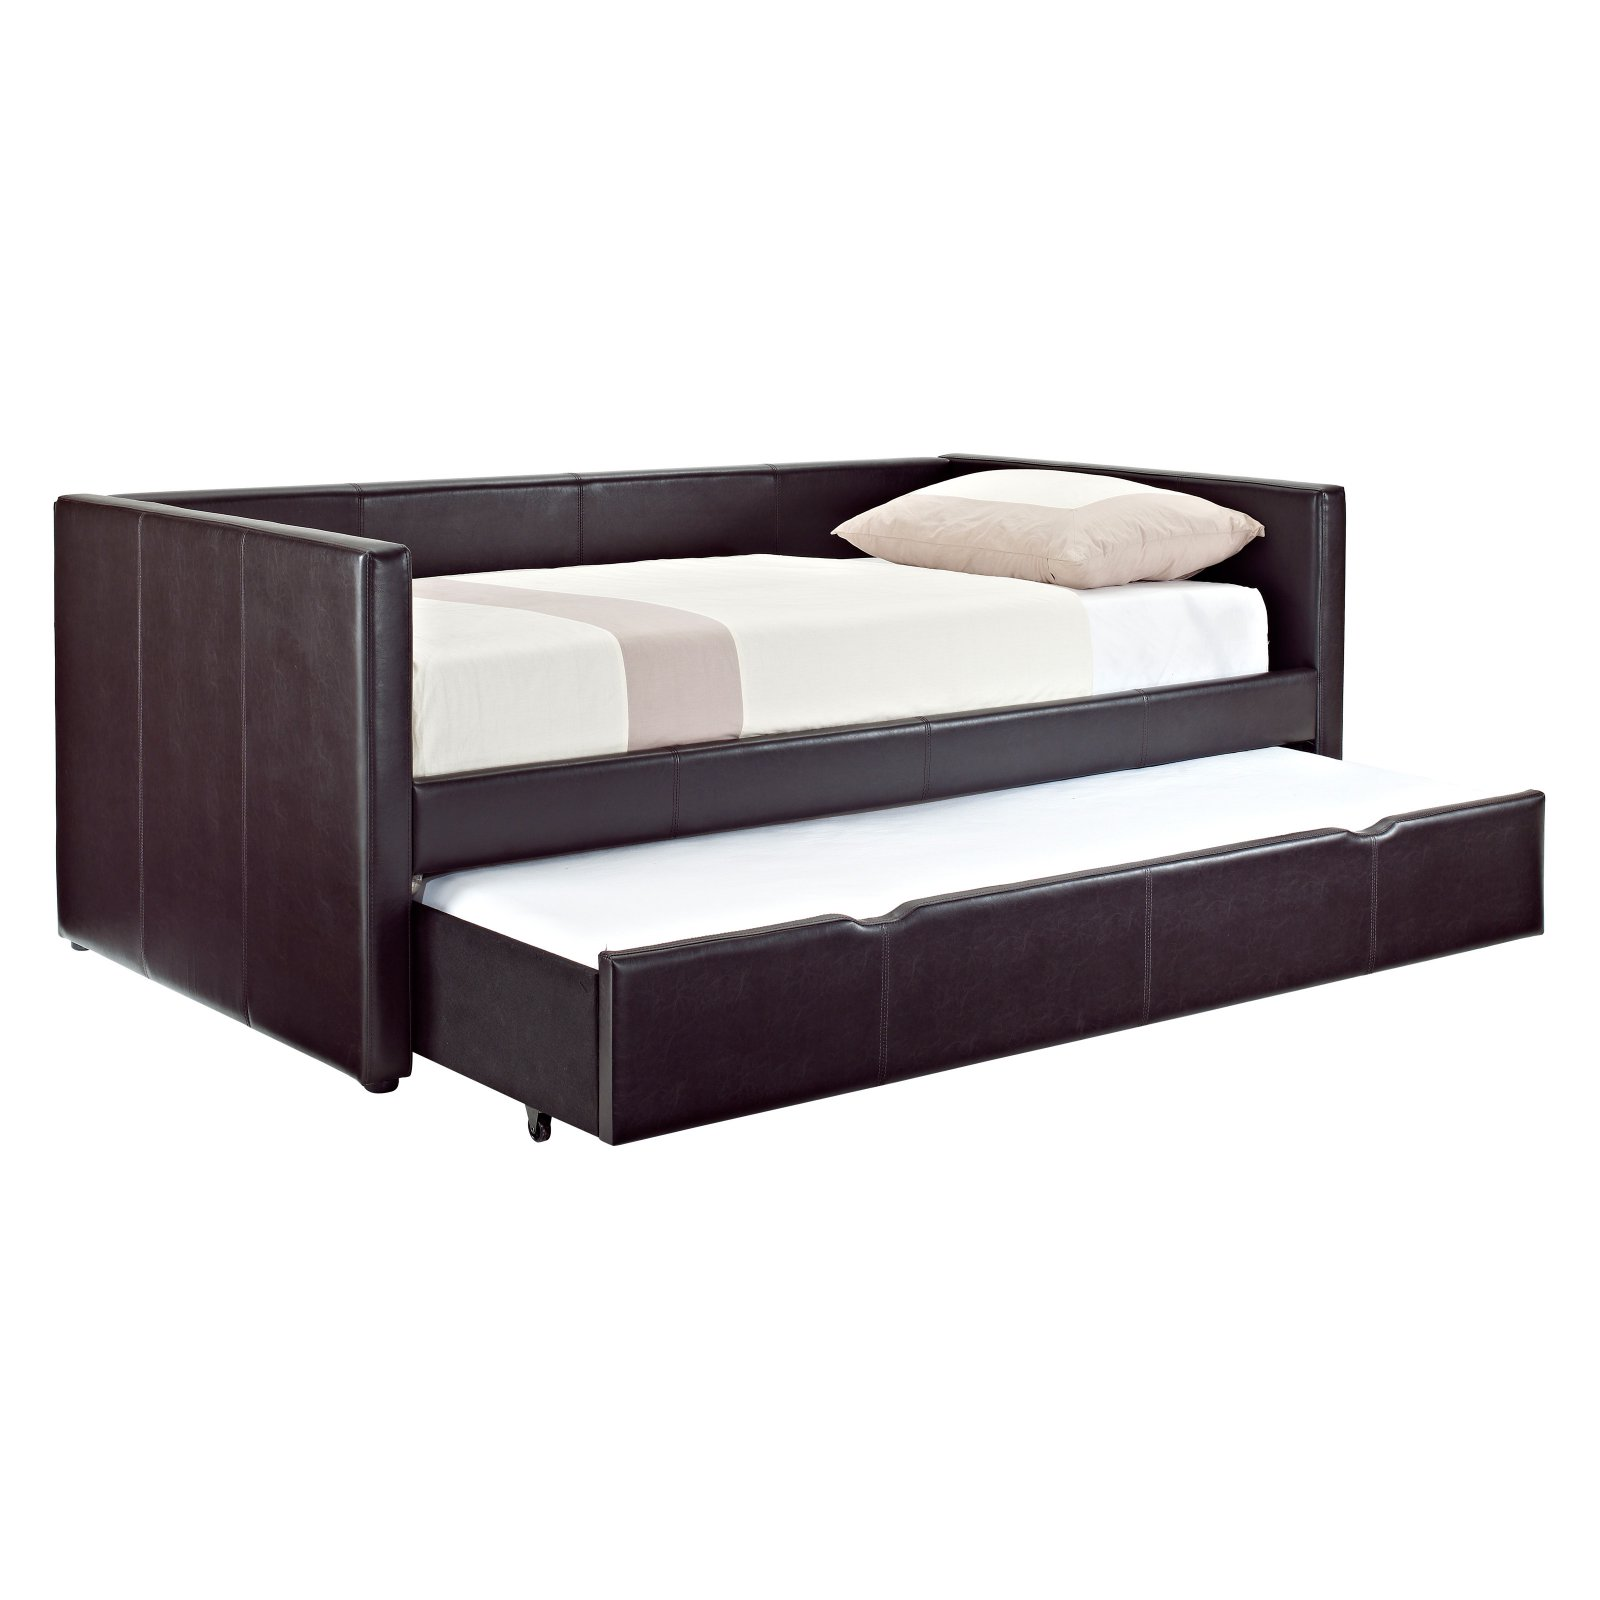 Standard Furniture Lindsey Upholstered Daybed - Twin